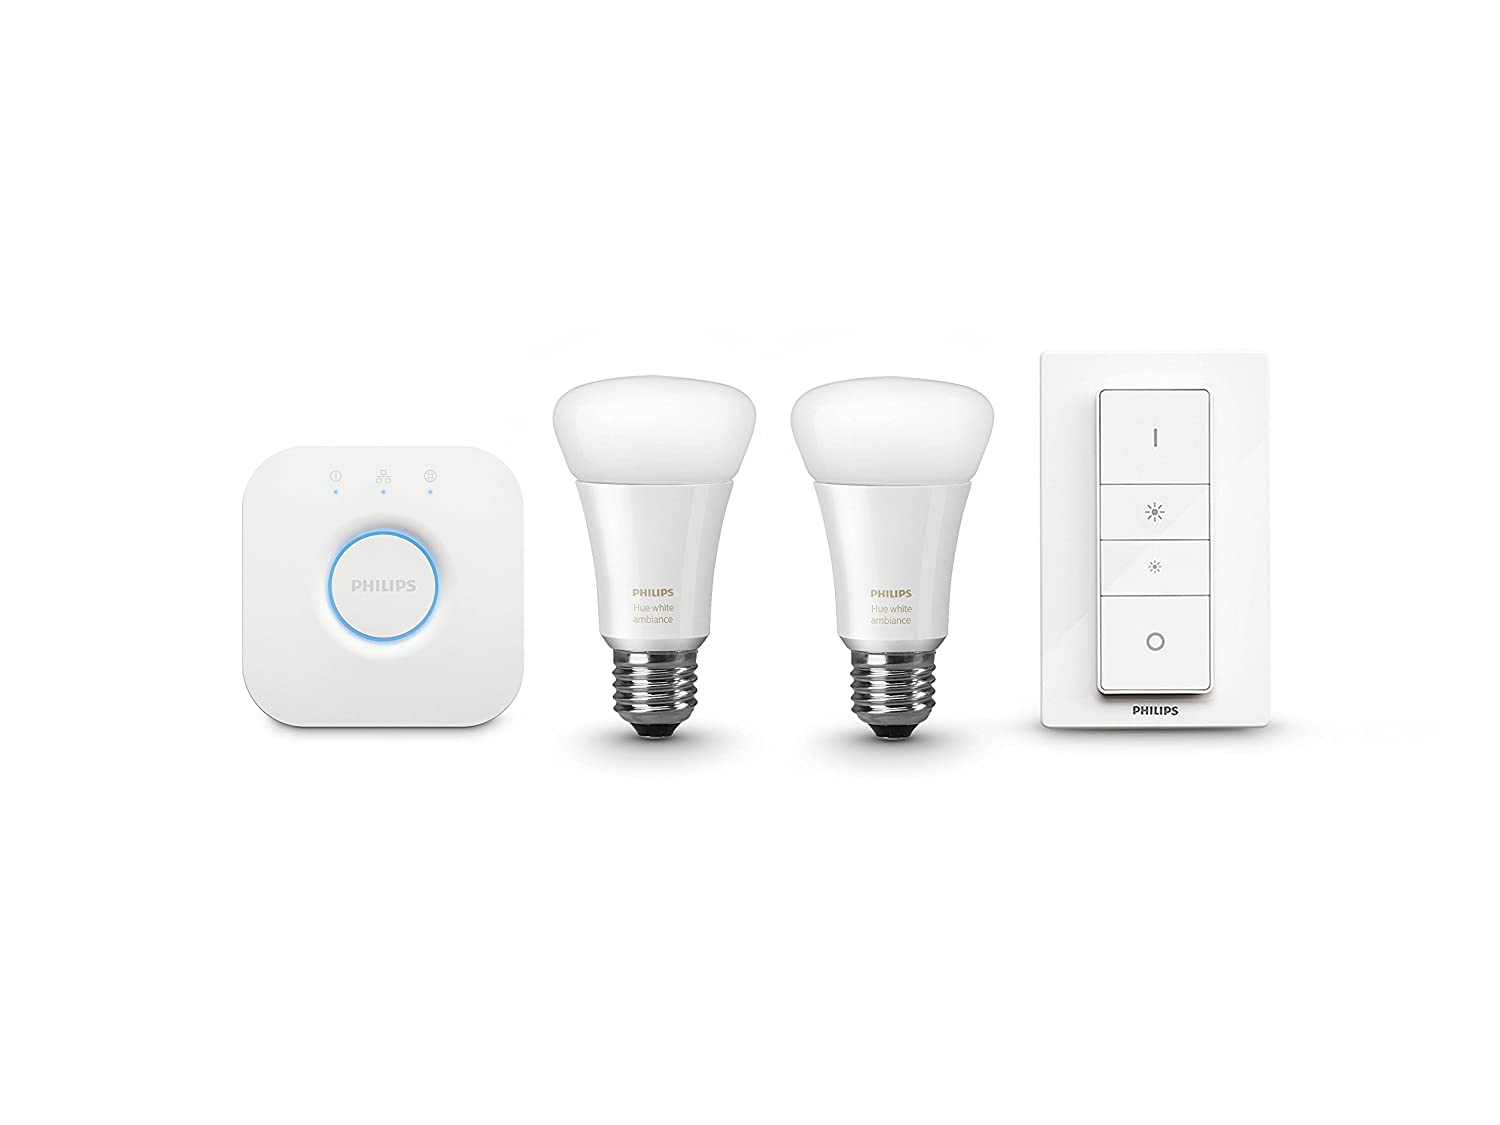 Philips 461012 Hue White Ambiance Starter Kit (2 A19 Bulbs, 1 Bridge, and 1  Dimmer Switch), Works with Amazon